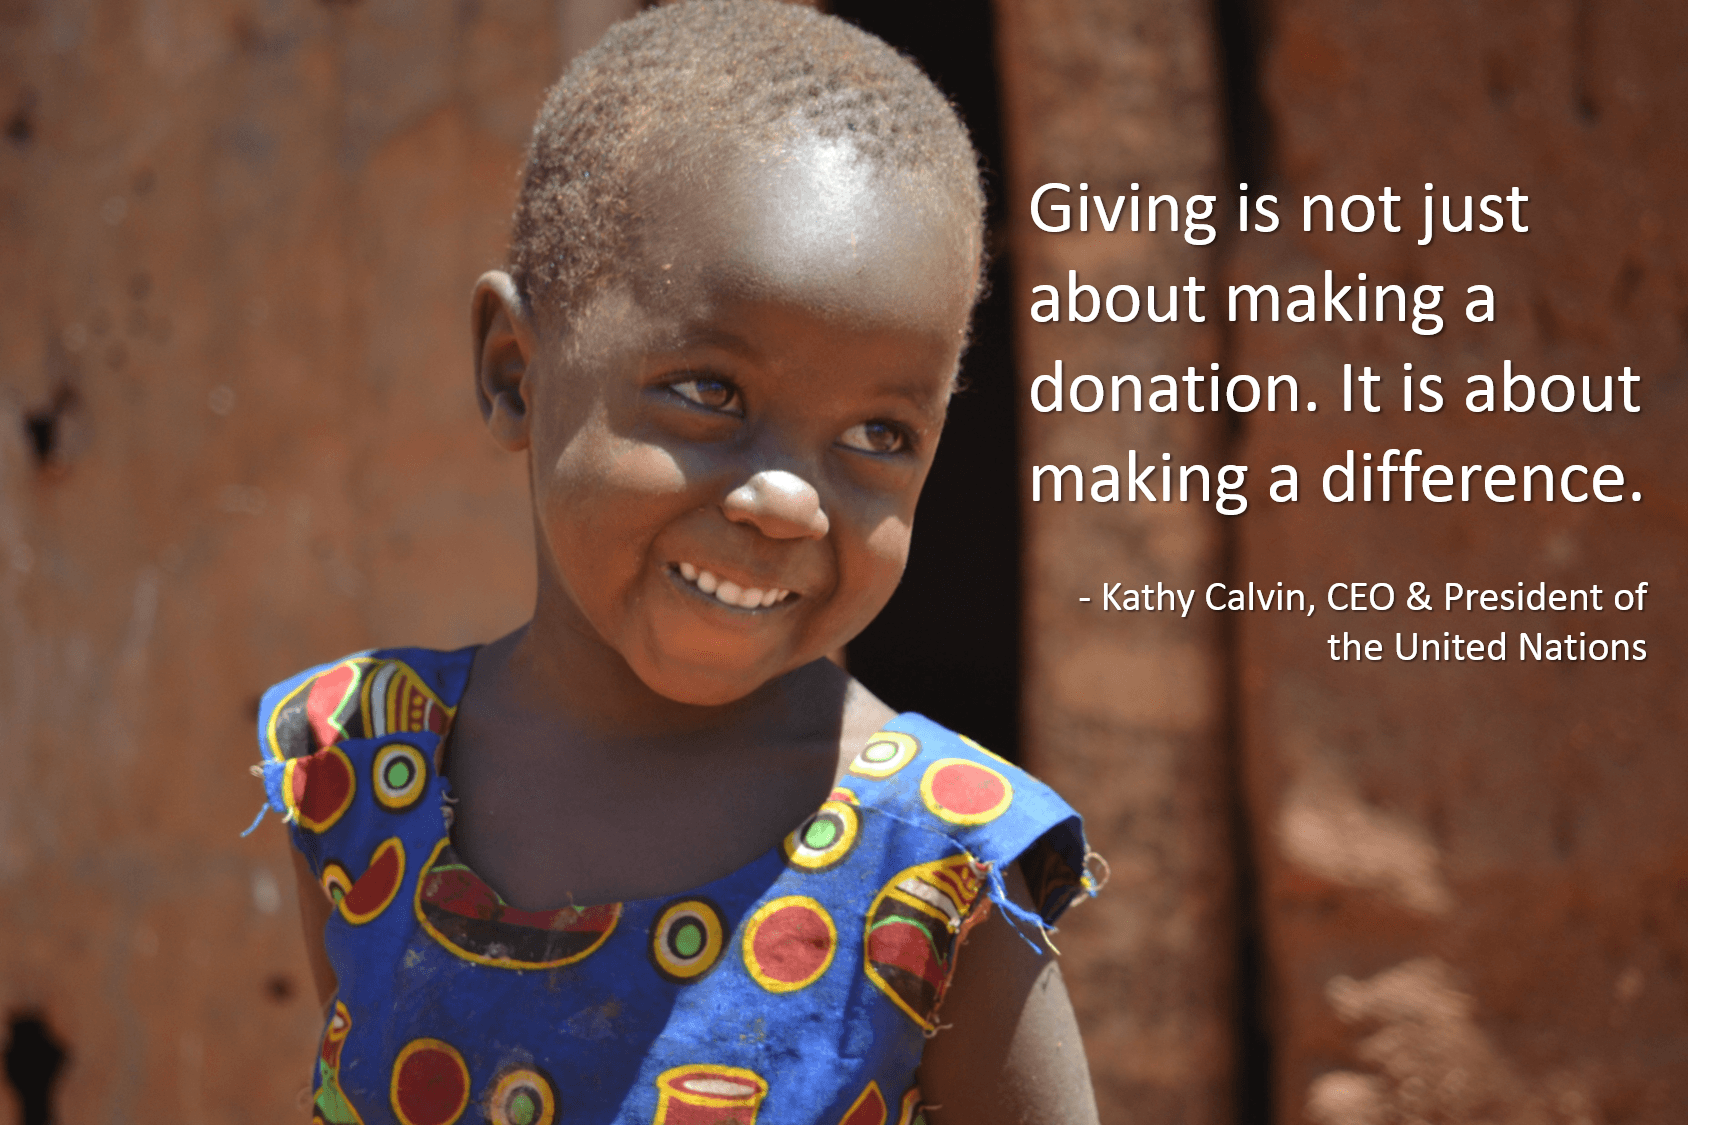 Giving-is-not-just-making-a-donation-Giving-Tuesday-quote.png